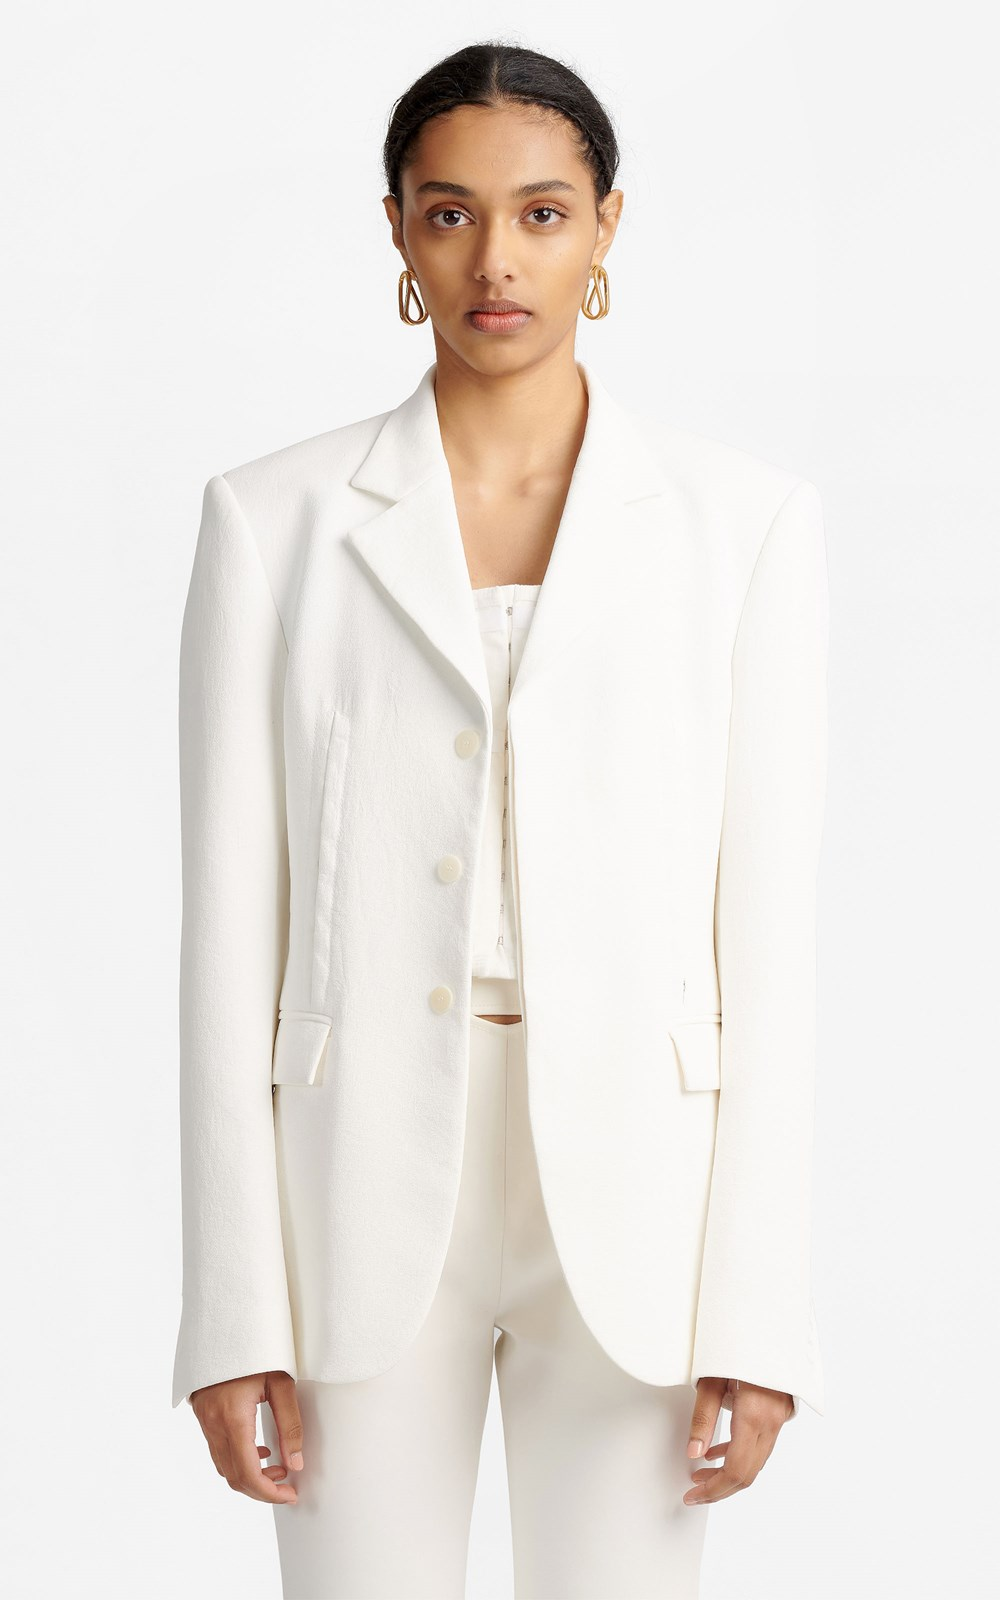 Unisex | HOOK & EYE WHITEWASH BLAZER